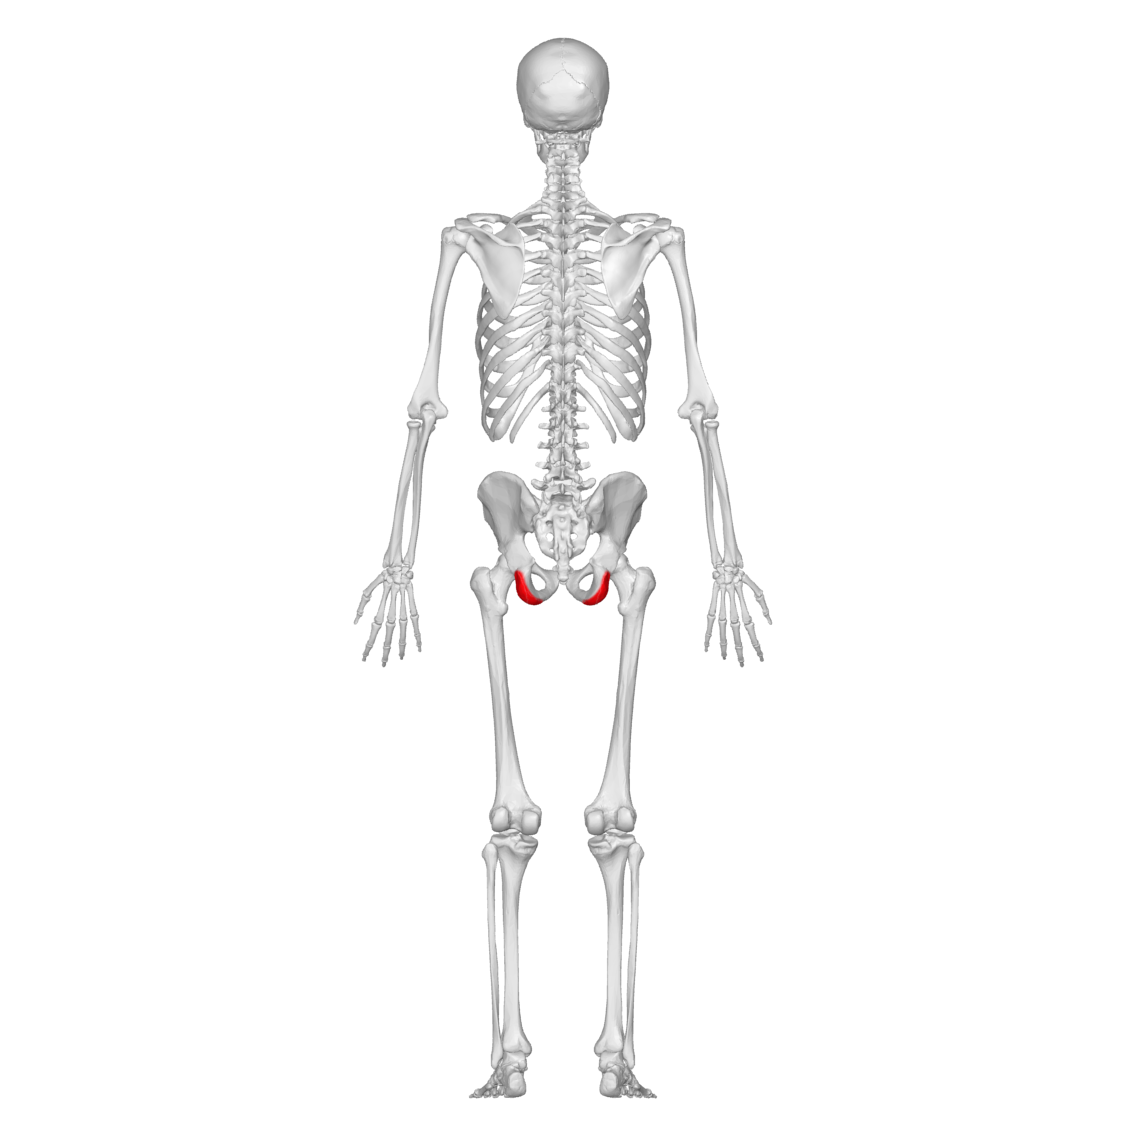 File:Ischial tuberosity 00 posterior view.png - Wikimedia Commons